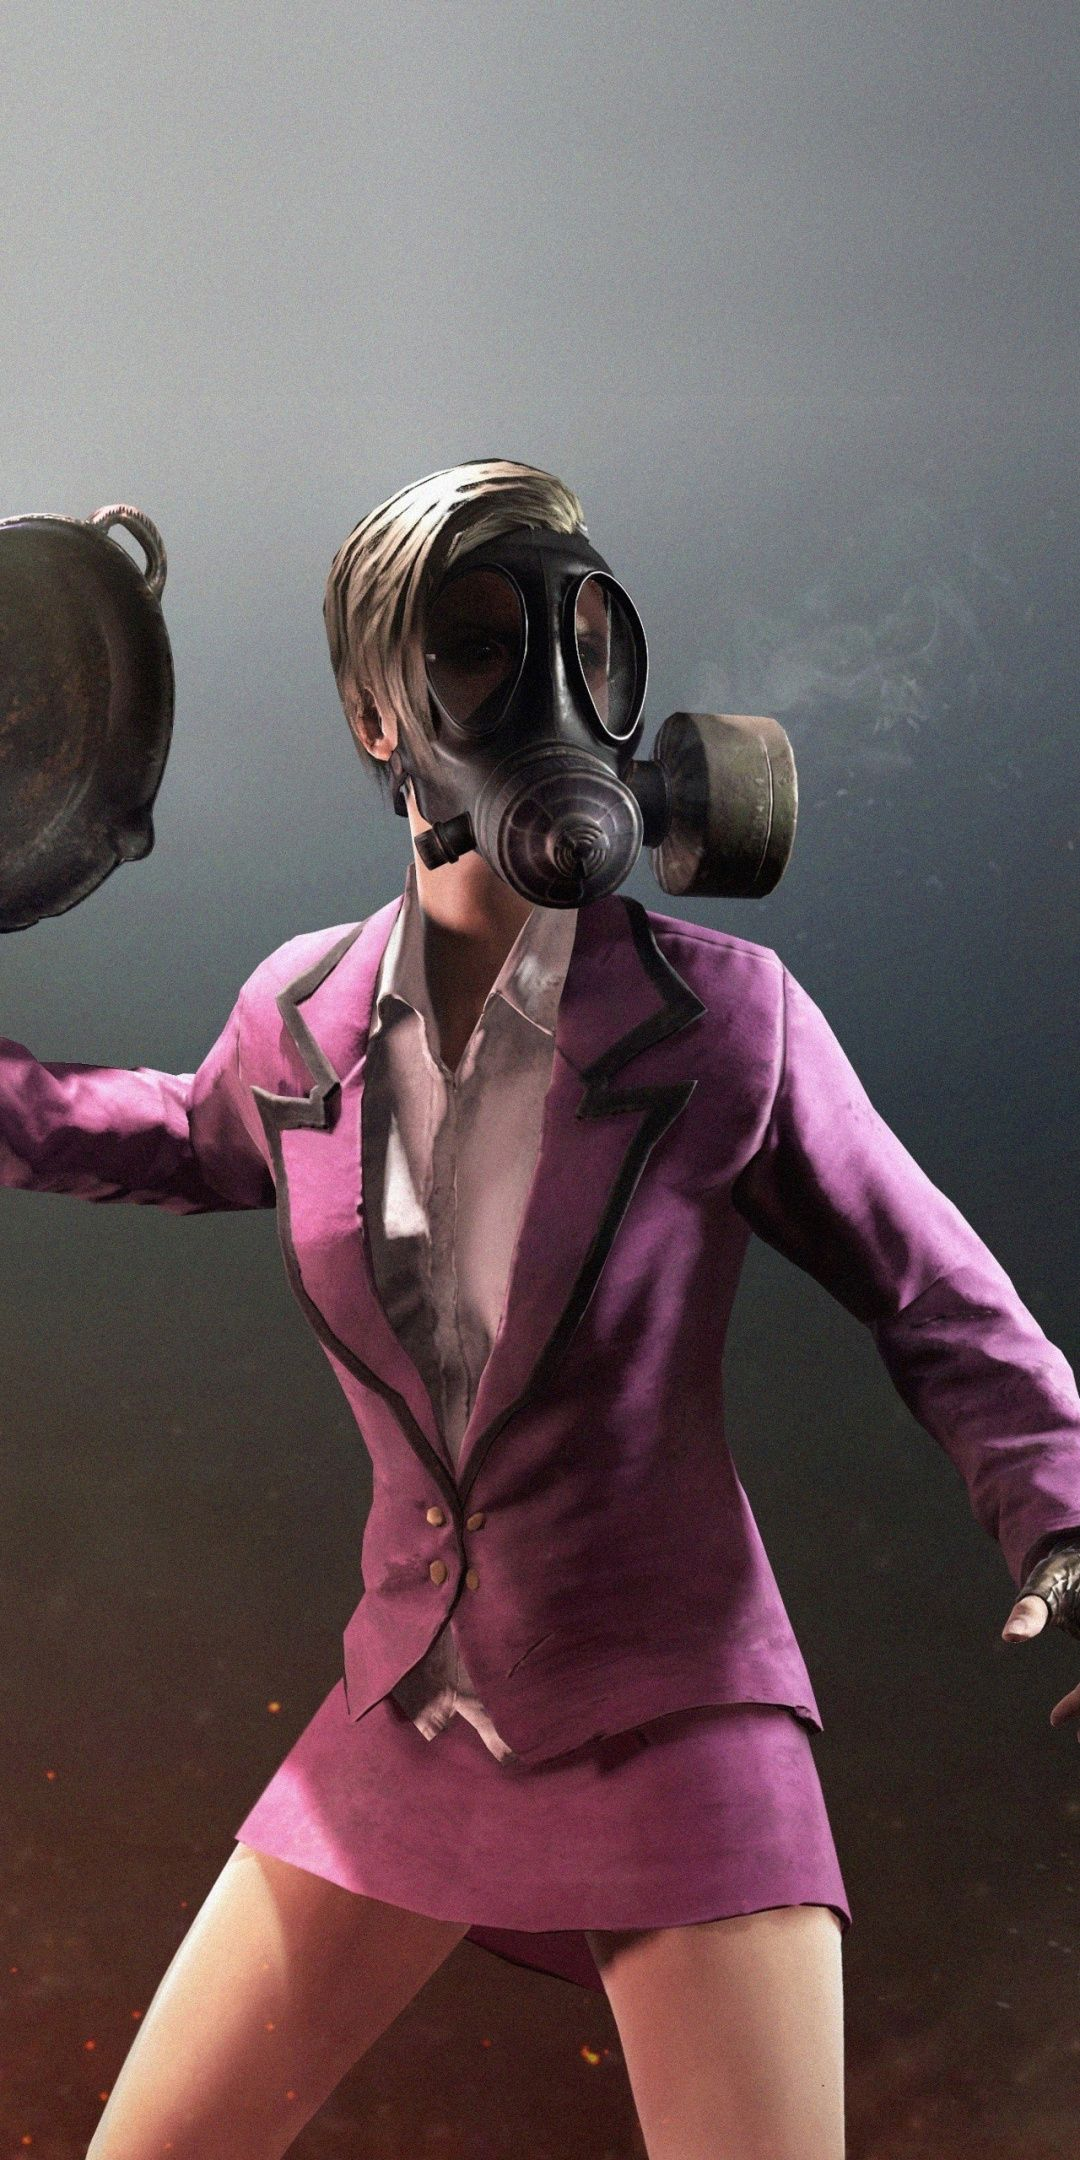 Pubg Battle Royale Woman In Gas Mask Mobile Game 1080x2160